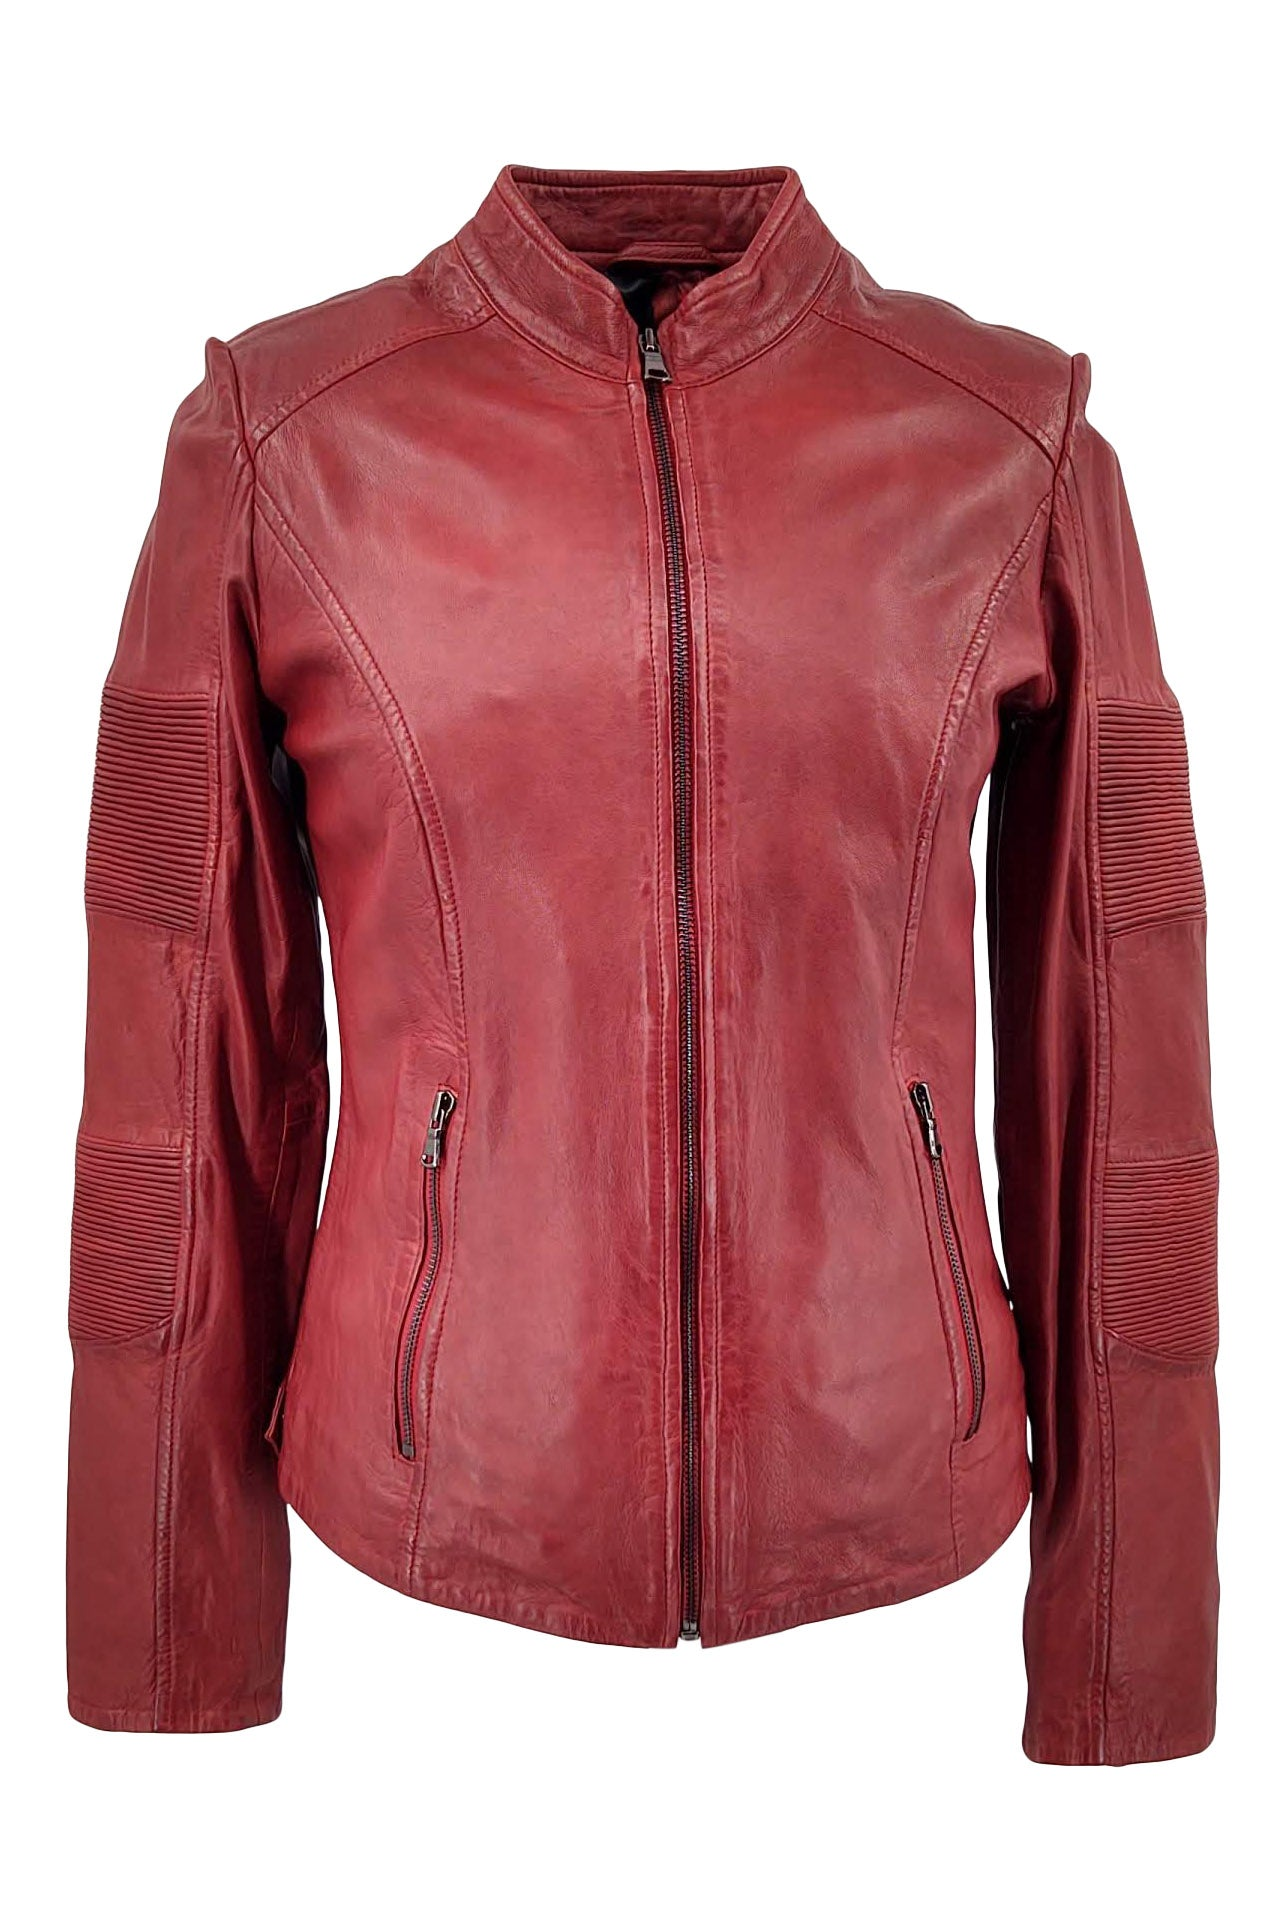 Ridle - Lamb Boss Leather - Women - Red | STAMPE PELS